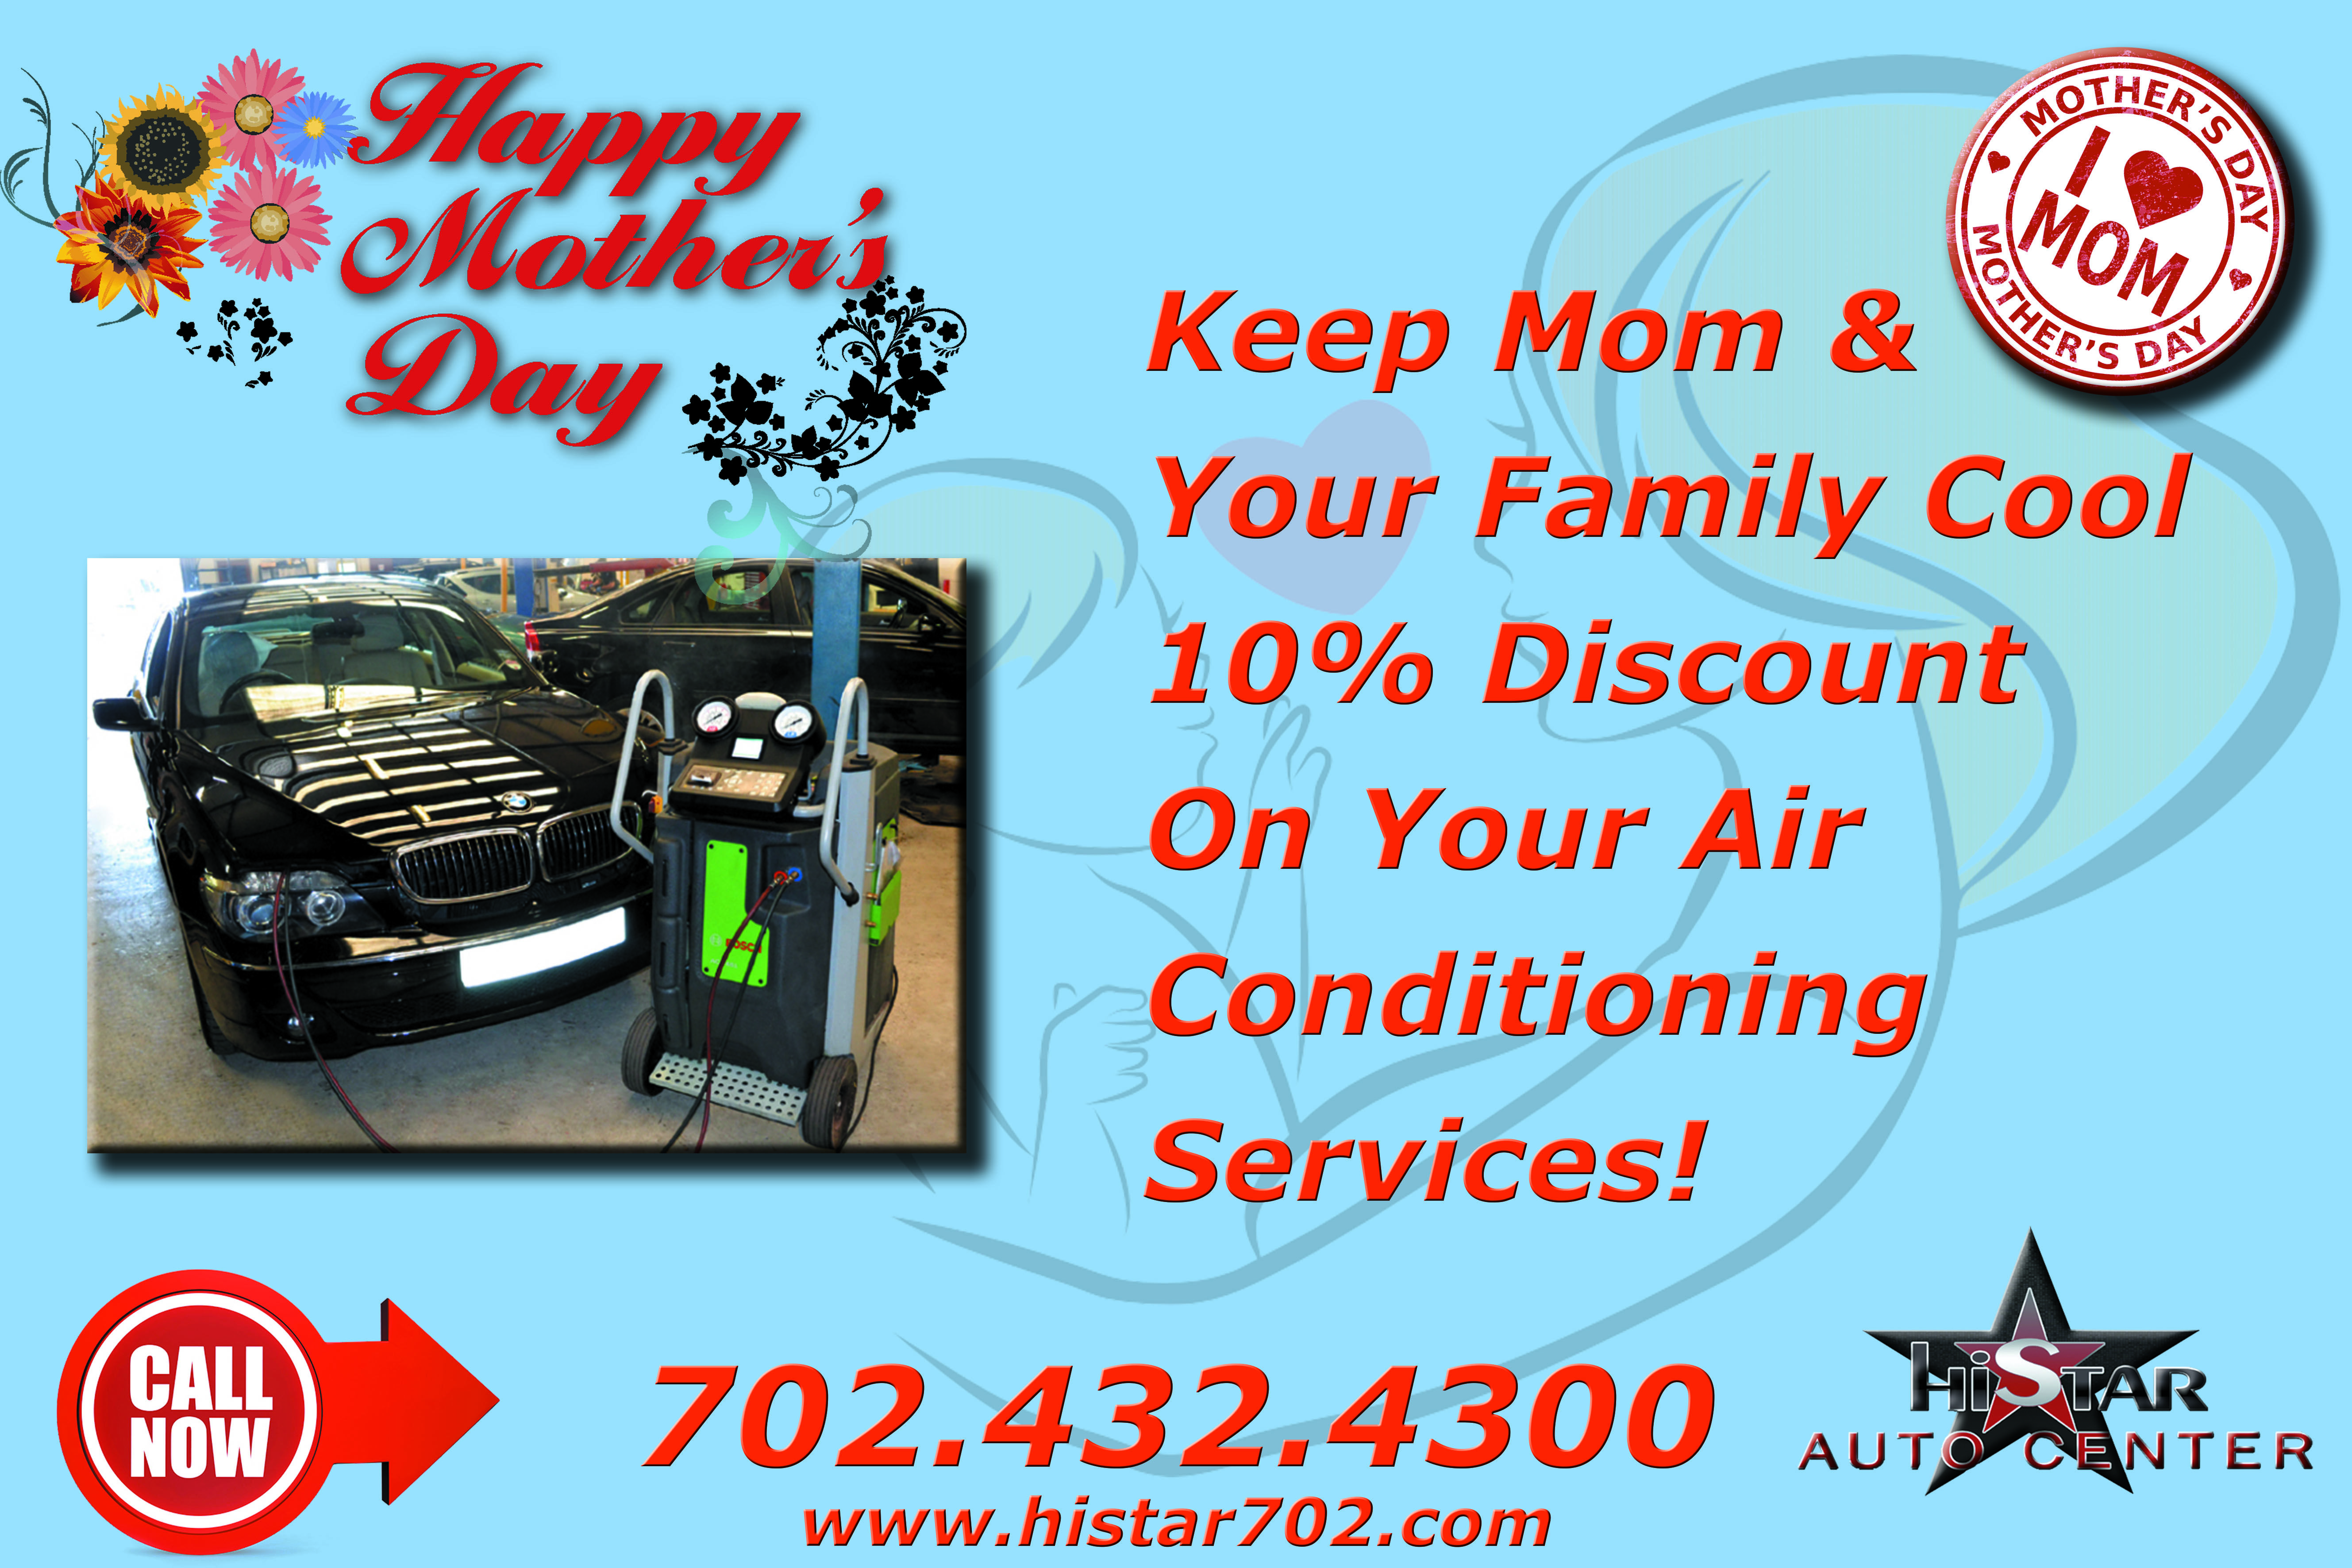 Happy Mother's Day! Keep Mom & Your Family Cool 10